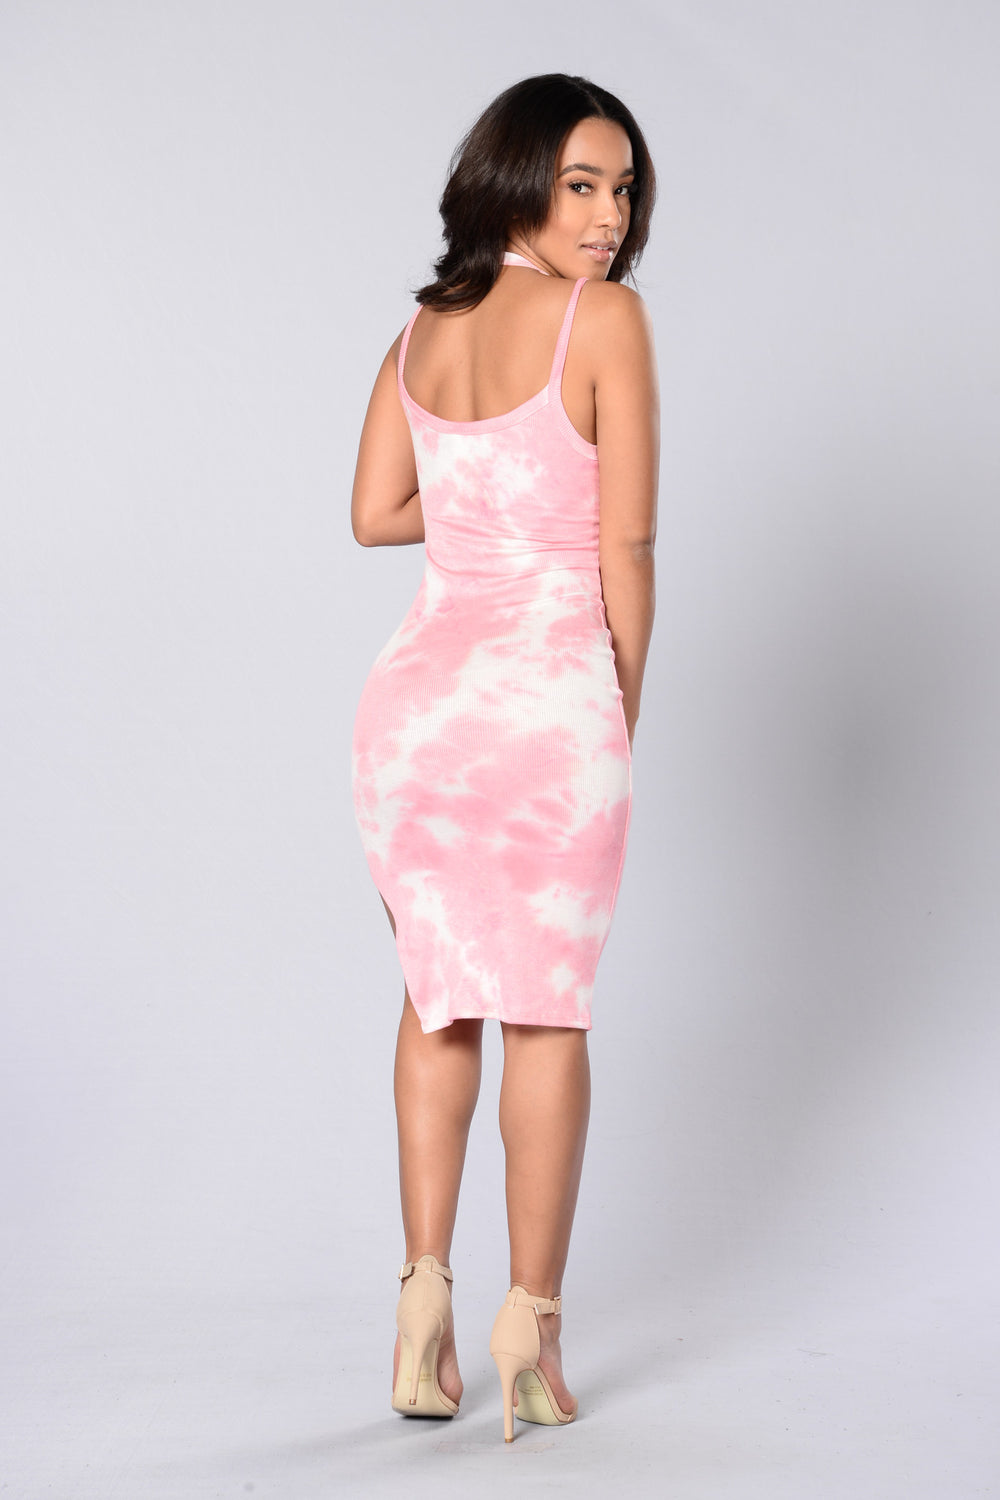 Strawberry Crush Dress - Pink